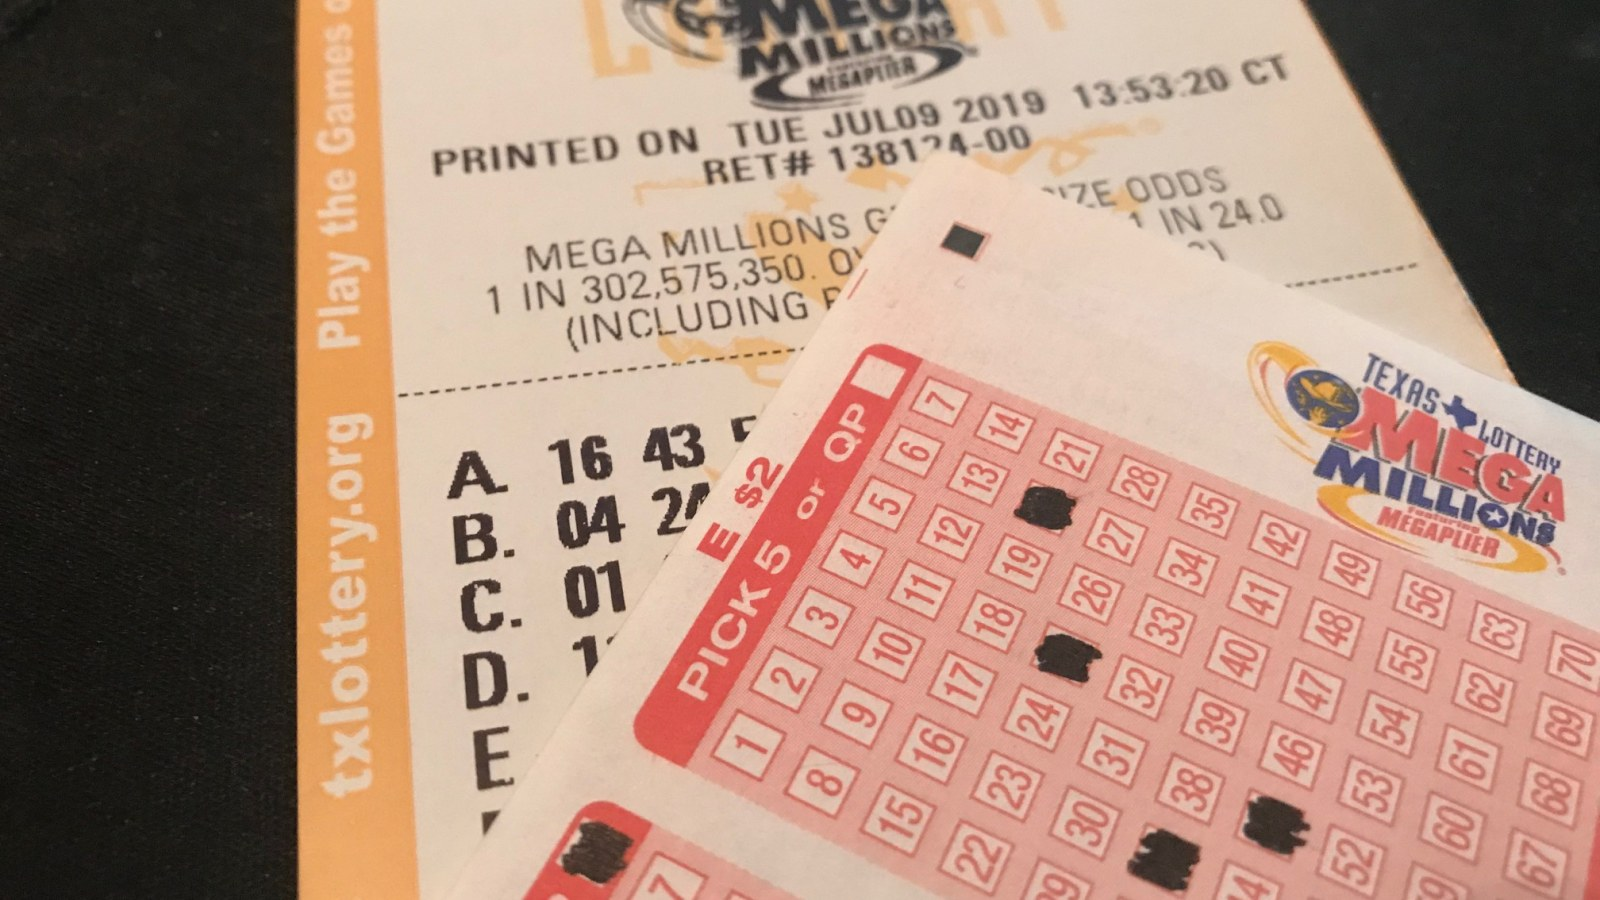 Mega Millions Numbers For 12 25 20 Friday Jackpot Was 352 Million